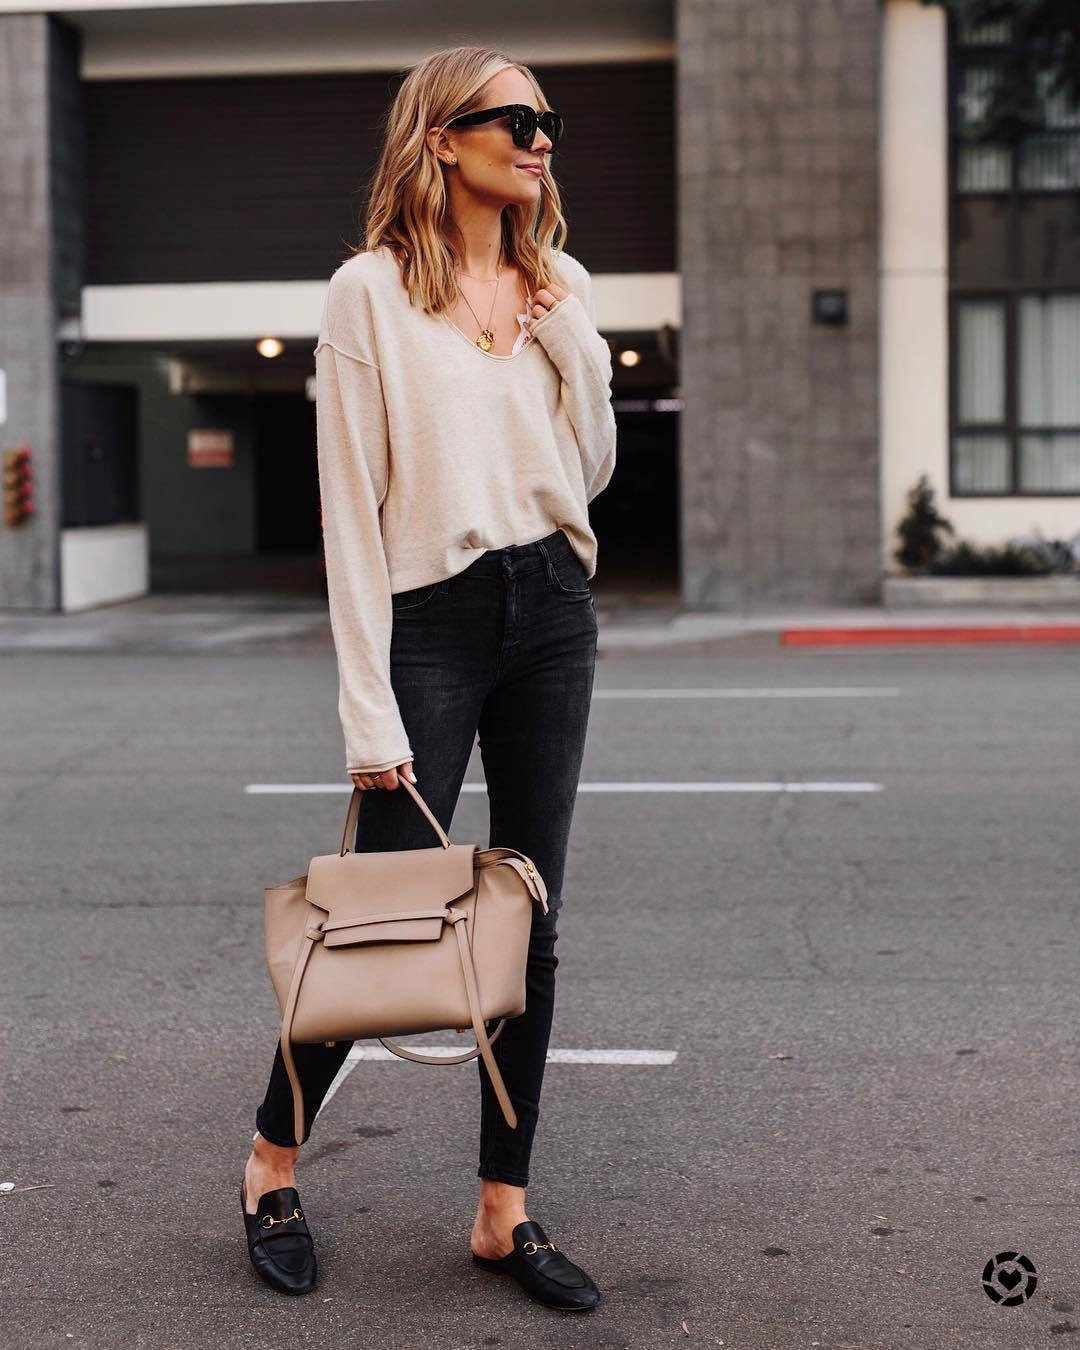 sweater knitted sweater cashmere jumper v neck black loafers mules shoulder bag black skinny jeans lace bralette